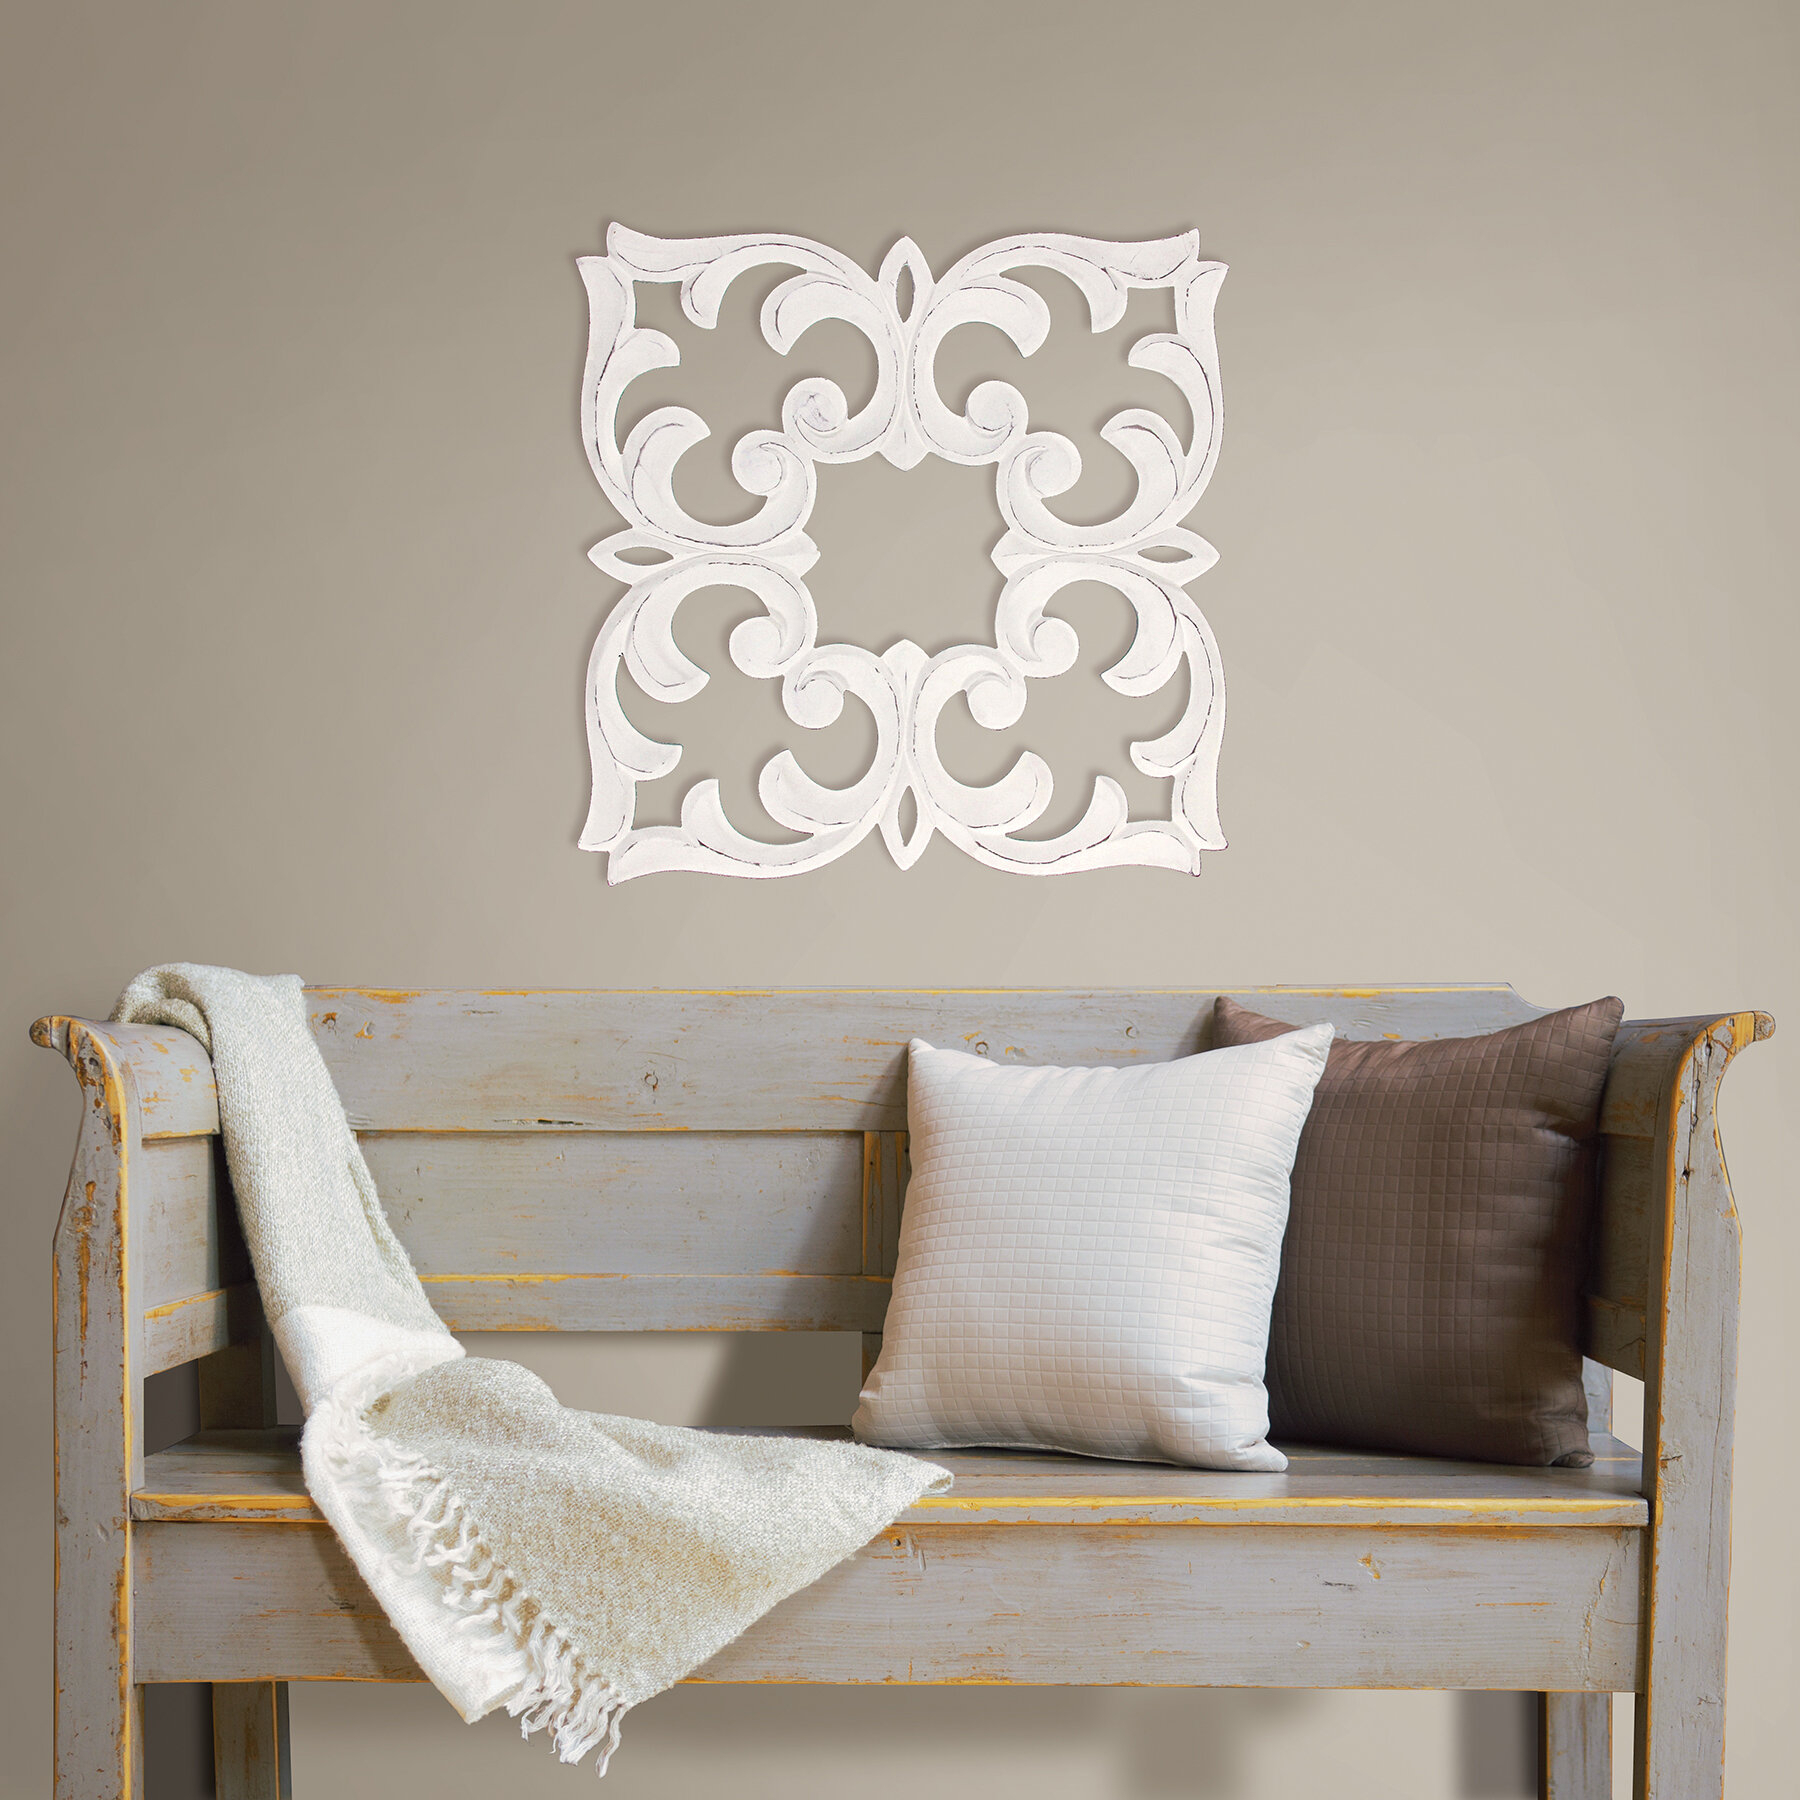 2 Piece Metal Wall Decor Sets By Fleur De Lis Living Regarding Most Recent Fetco Home Decor Javen Handcrafted Medallion Wall Décor & Reviews (Gallery 19 of 20)